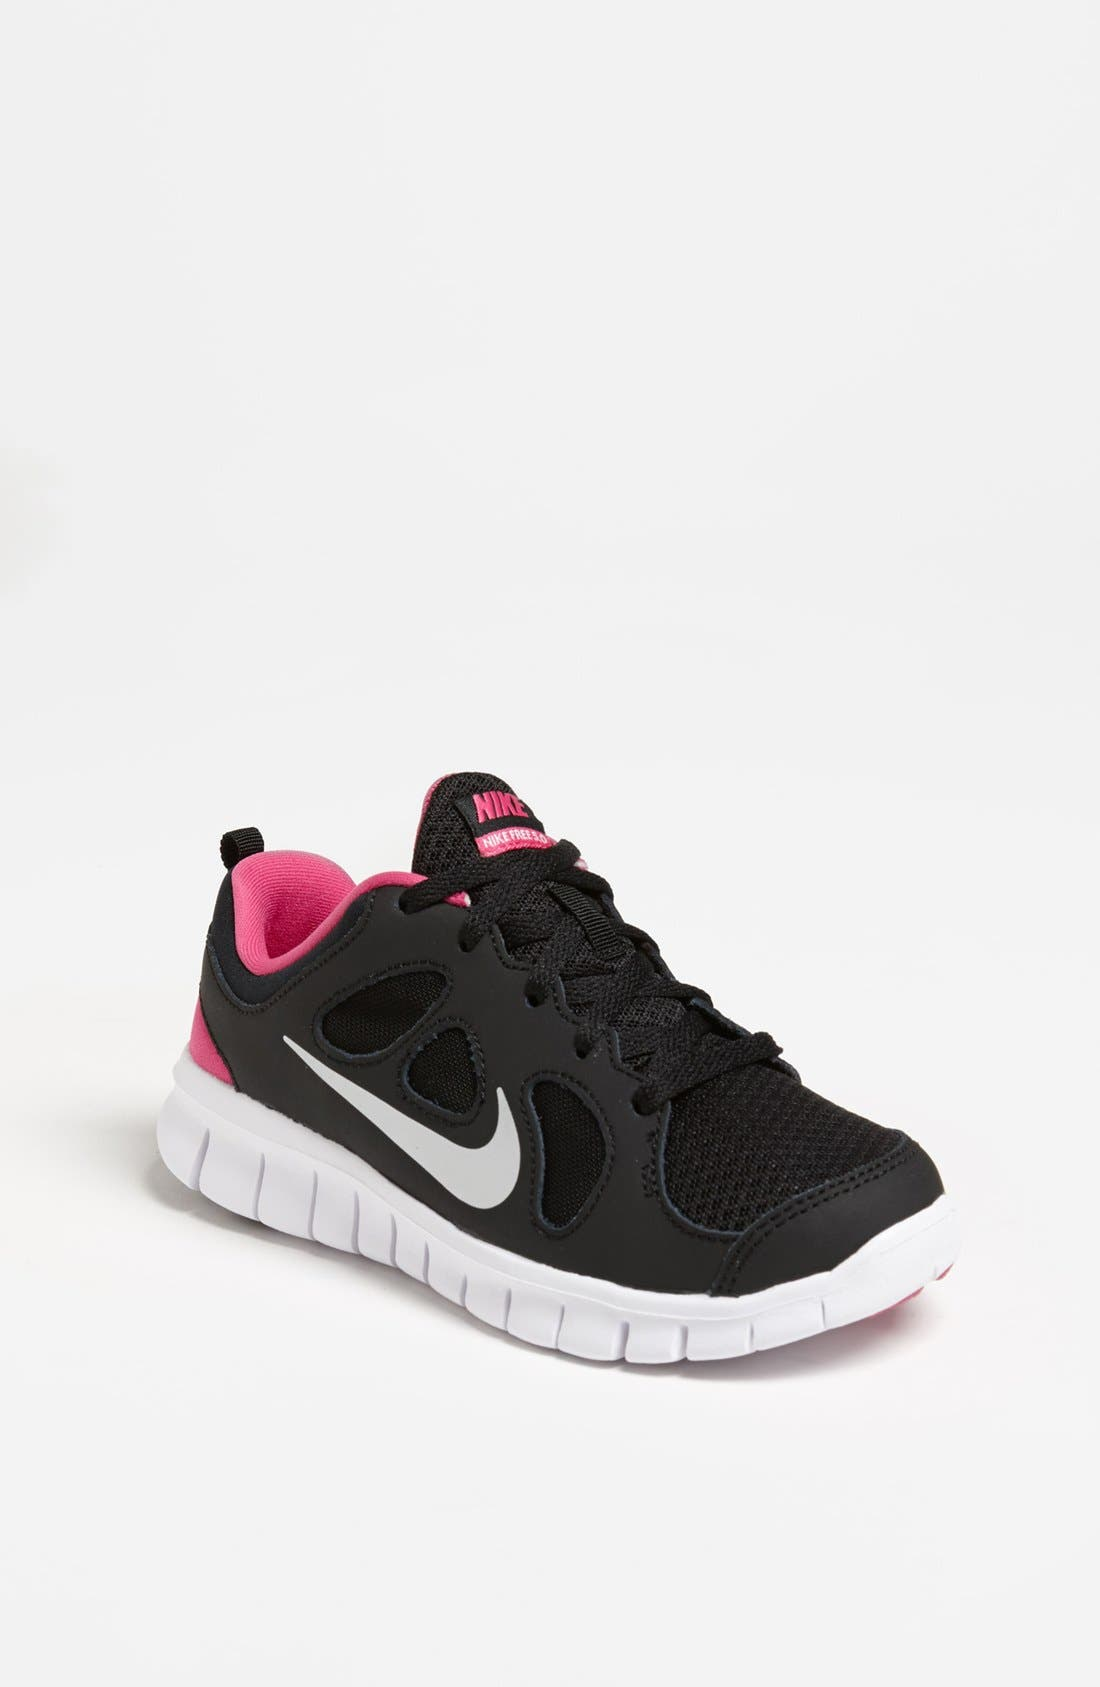 Alternate Image 1 Selected - Nike 'Free Run 5.0' Running Shoe (Toddler & Little Kid)